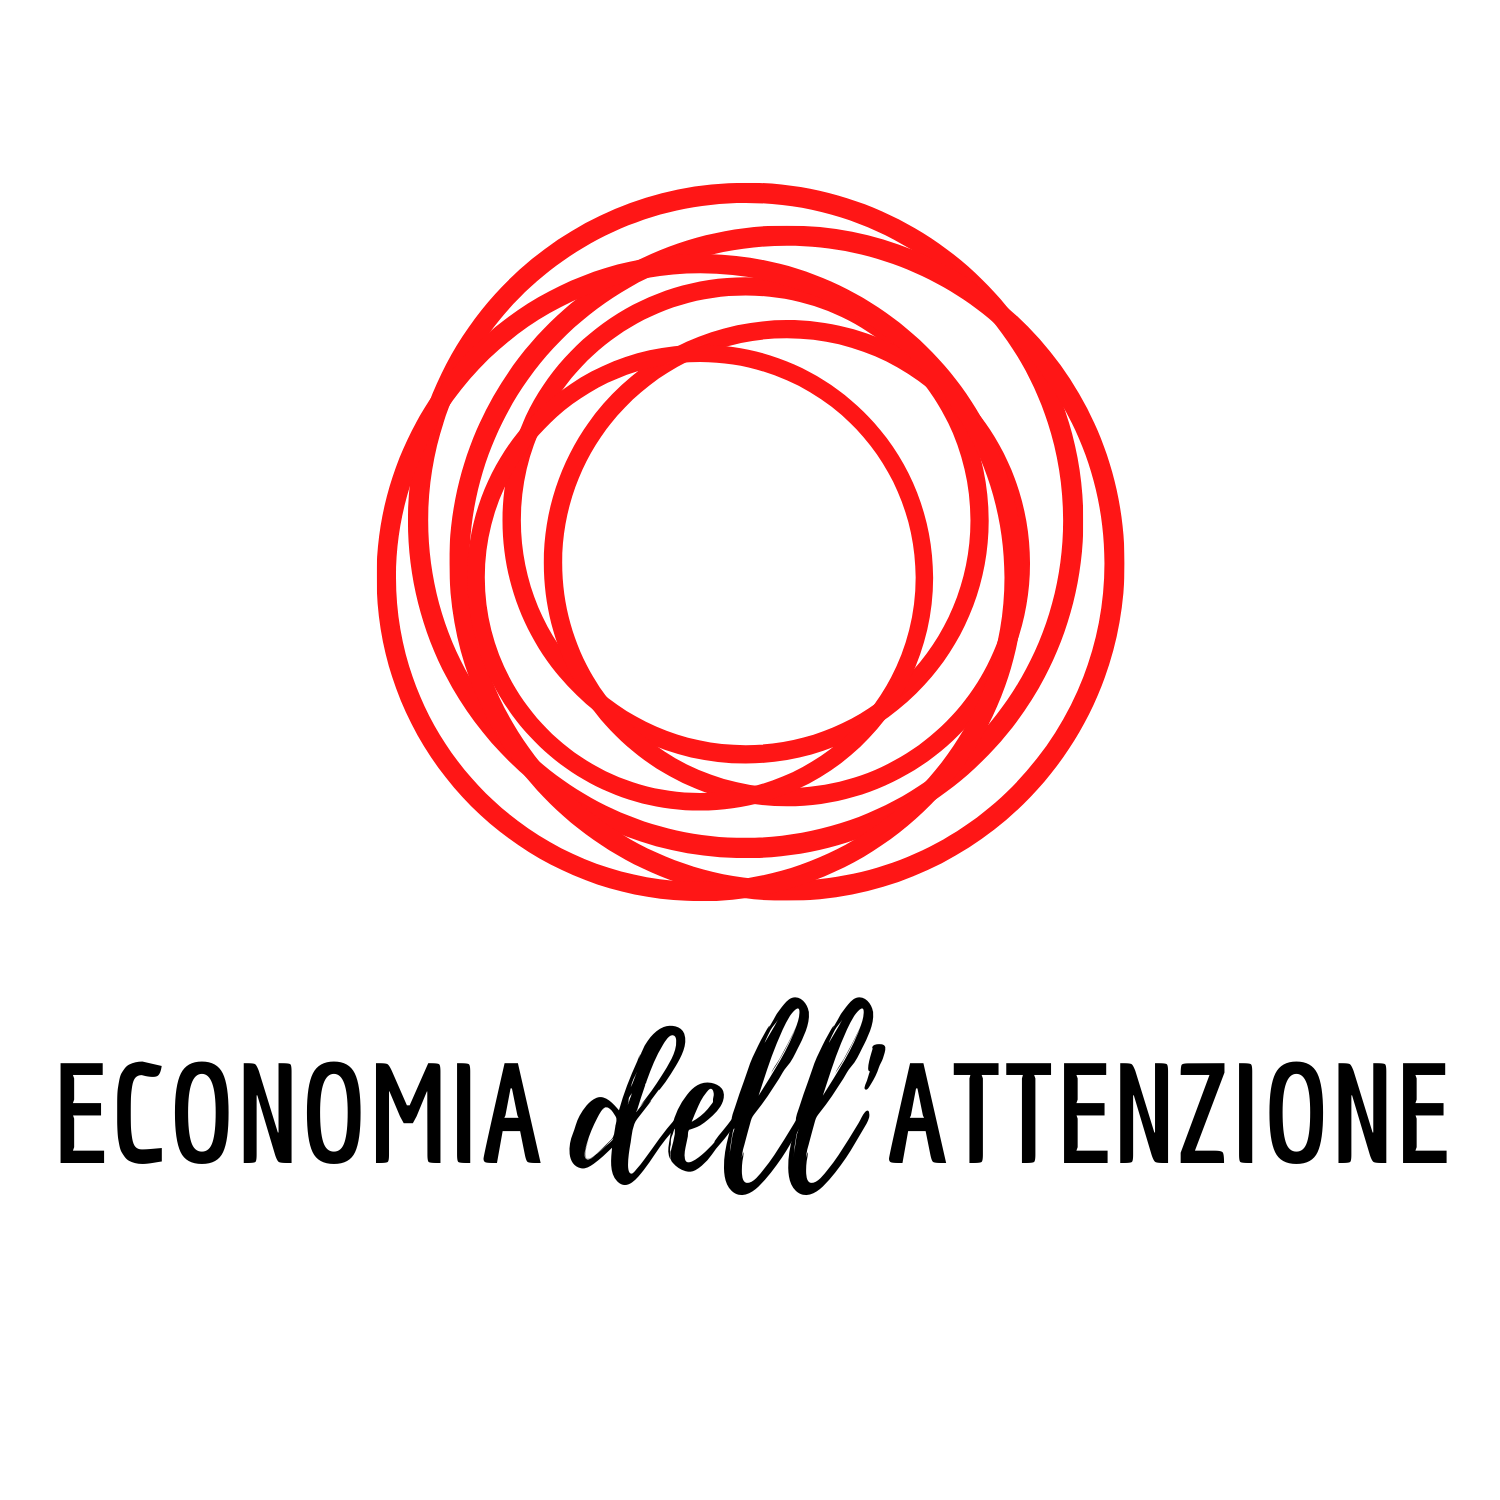 https://www.promotionmagazine.it/wp/wp-content/uploads/2020/08/Economia-attenzione.png